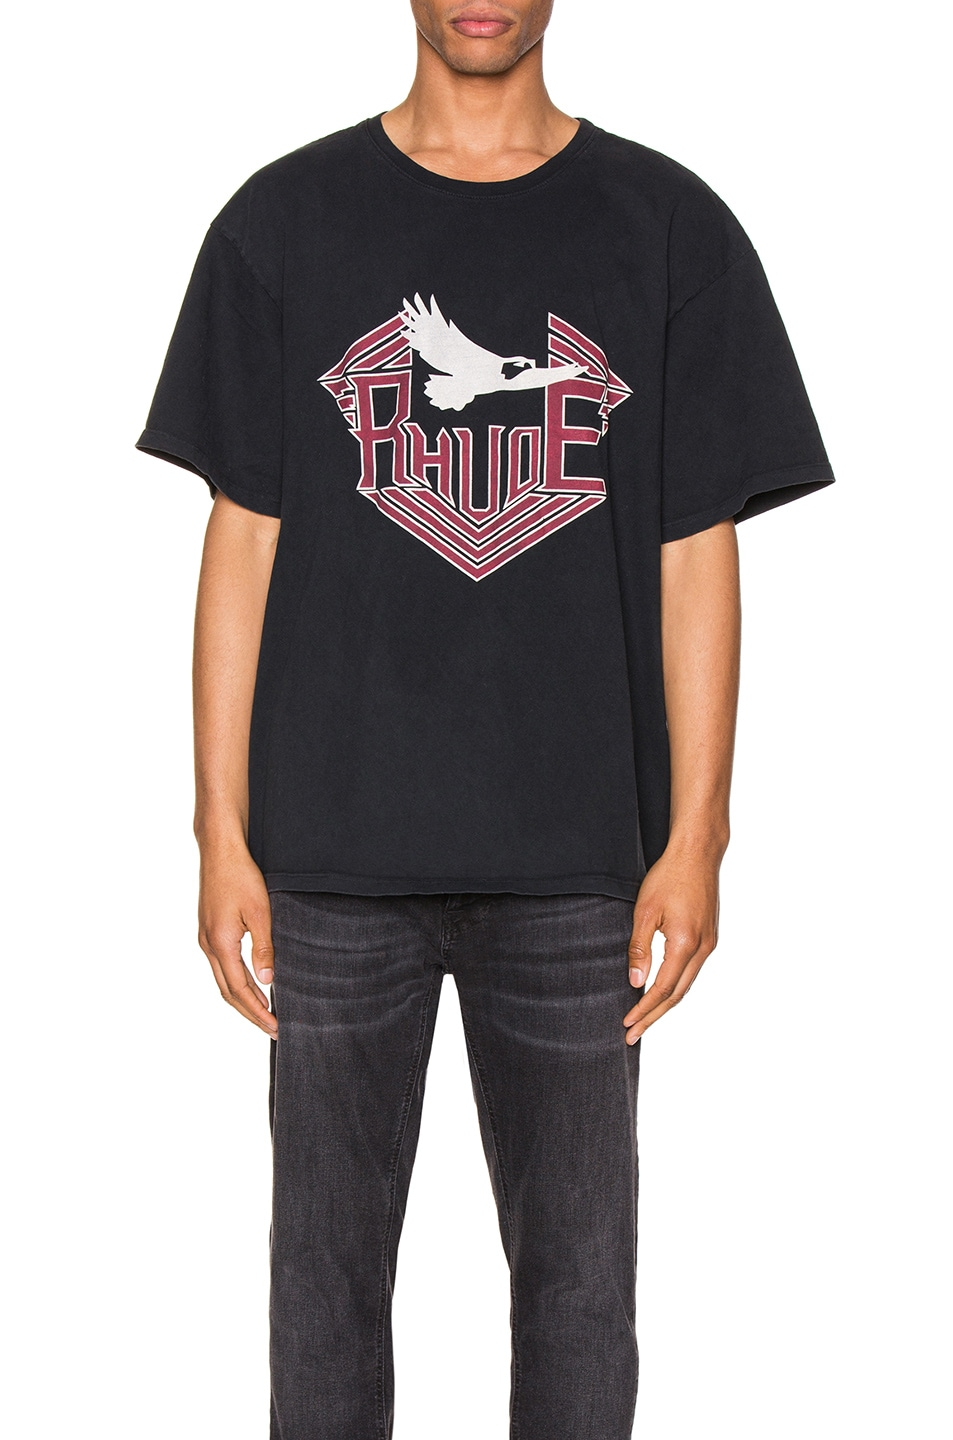 Image 1 of Rhude Rhanger Tee in Black